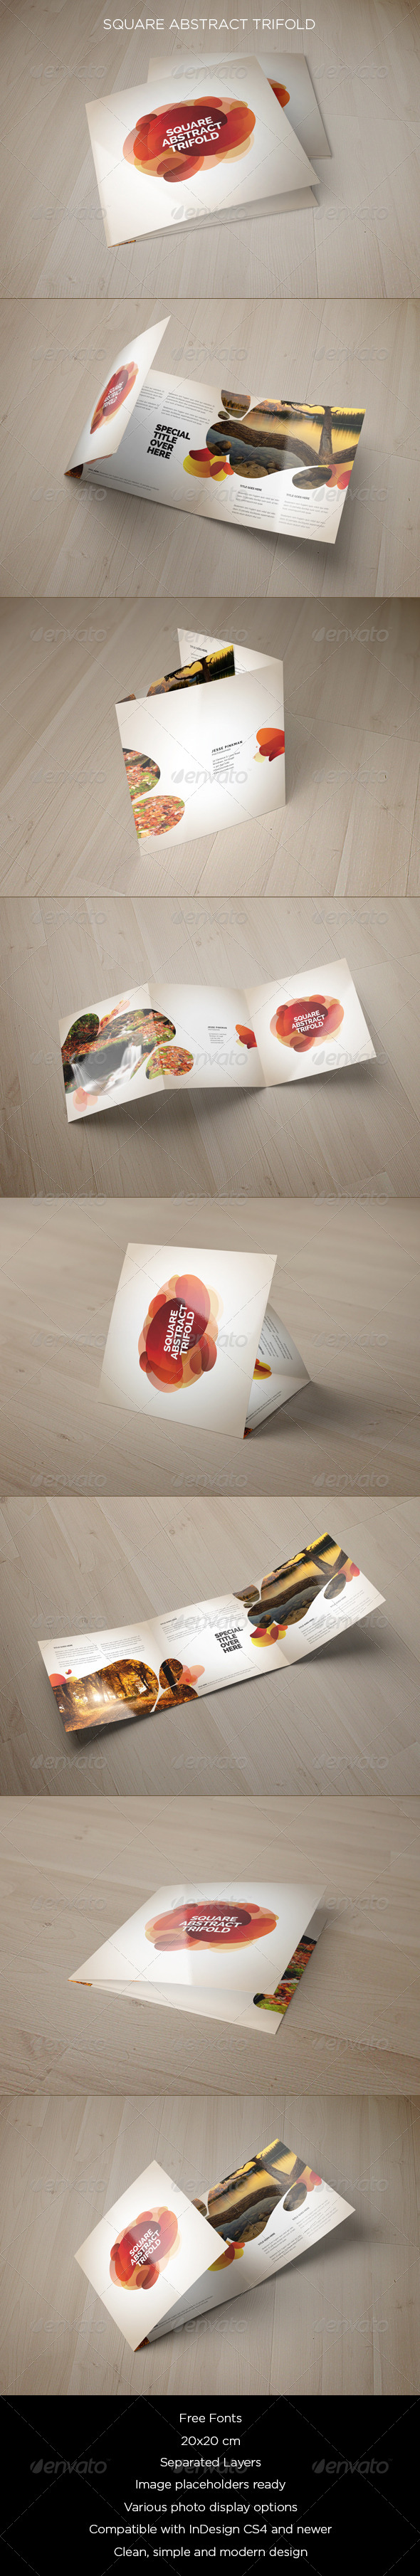 GraphicRiver Square Abstract Trifold 8473773